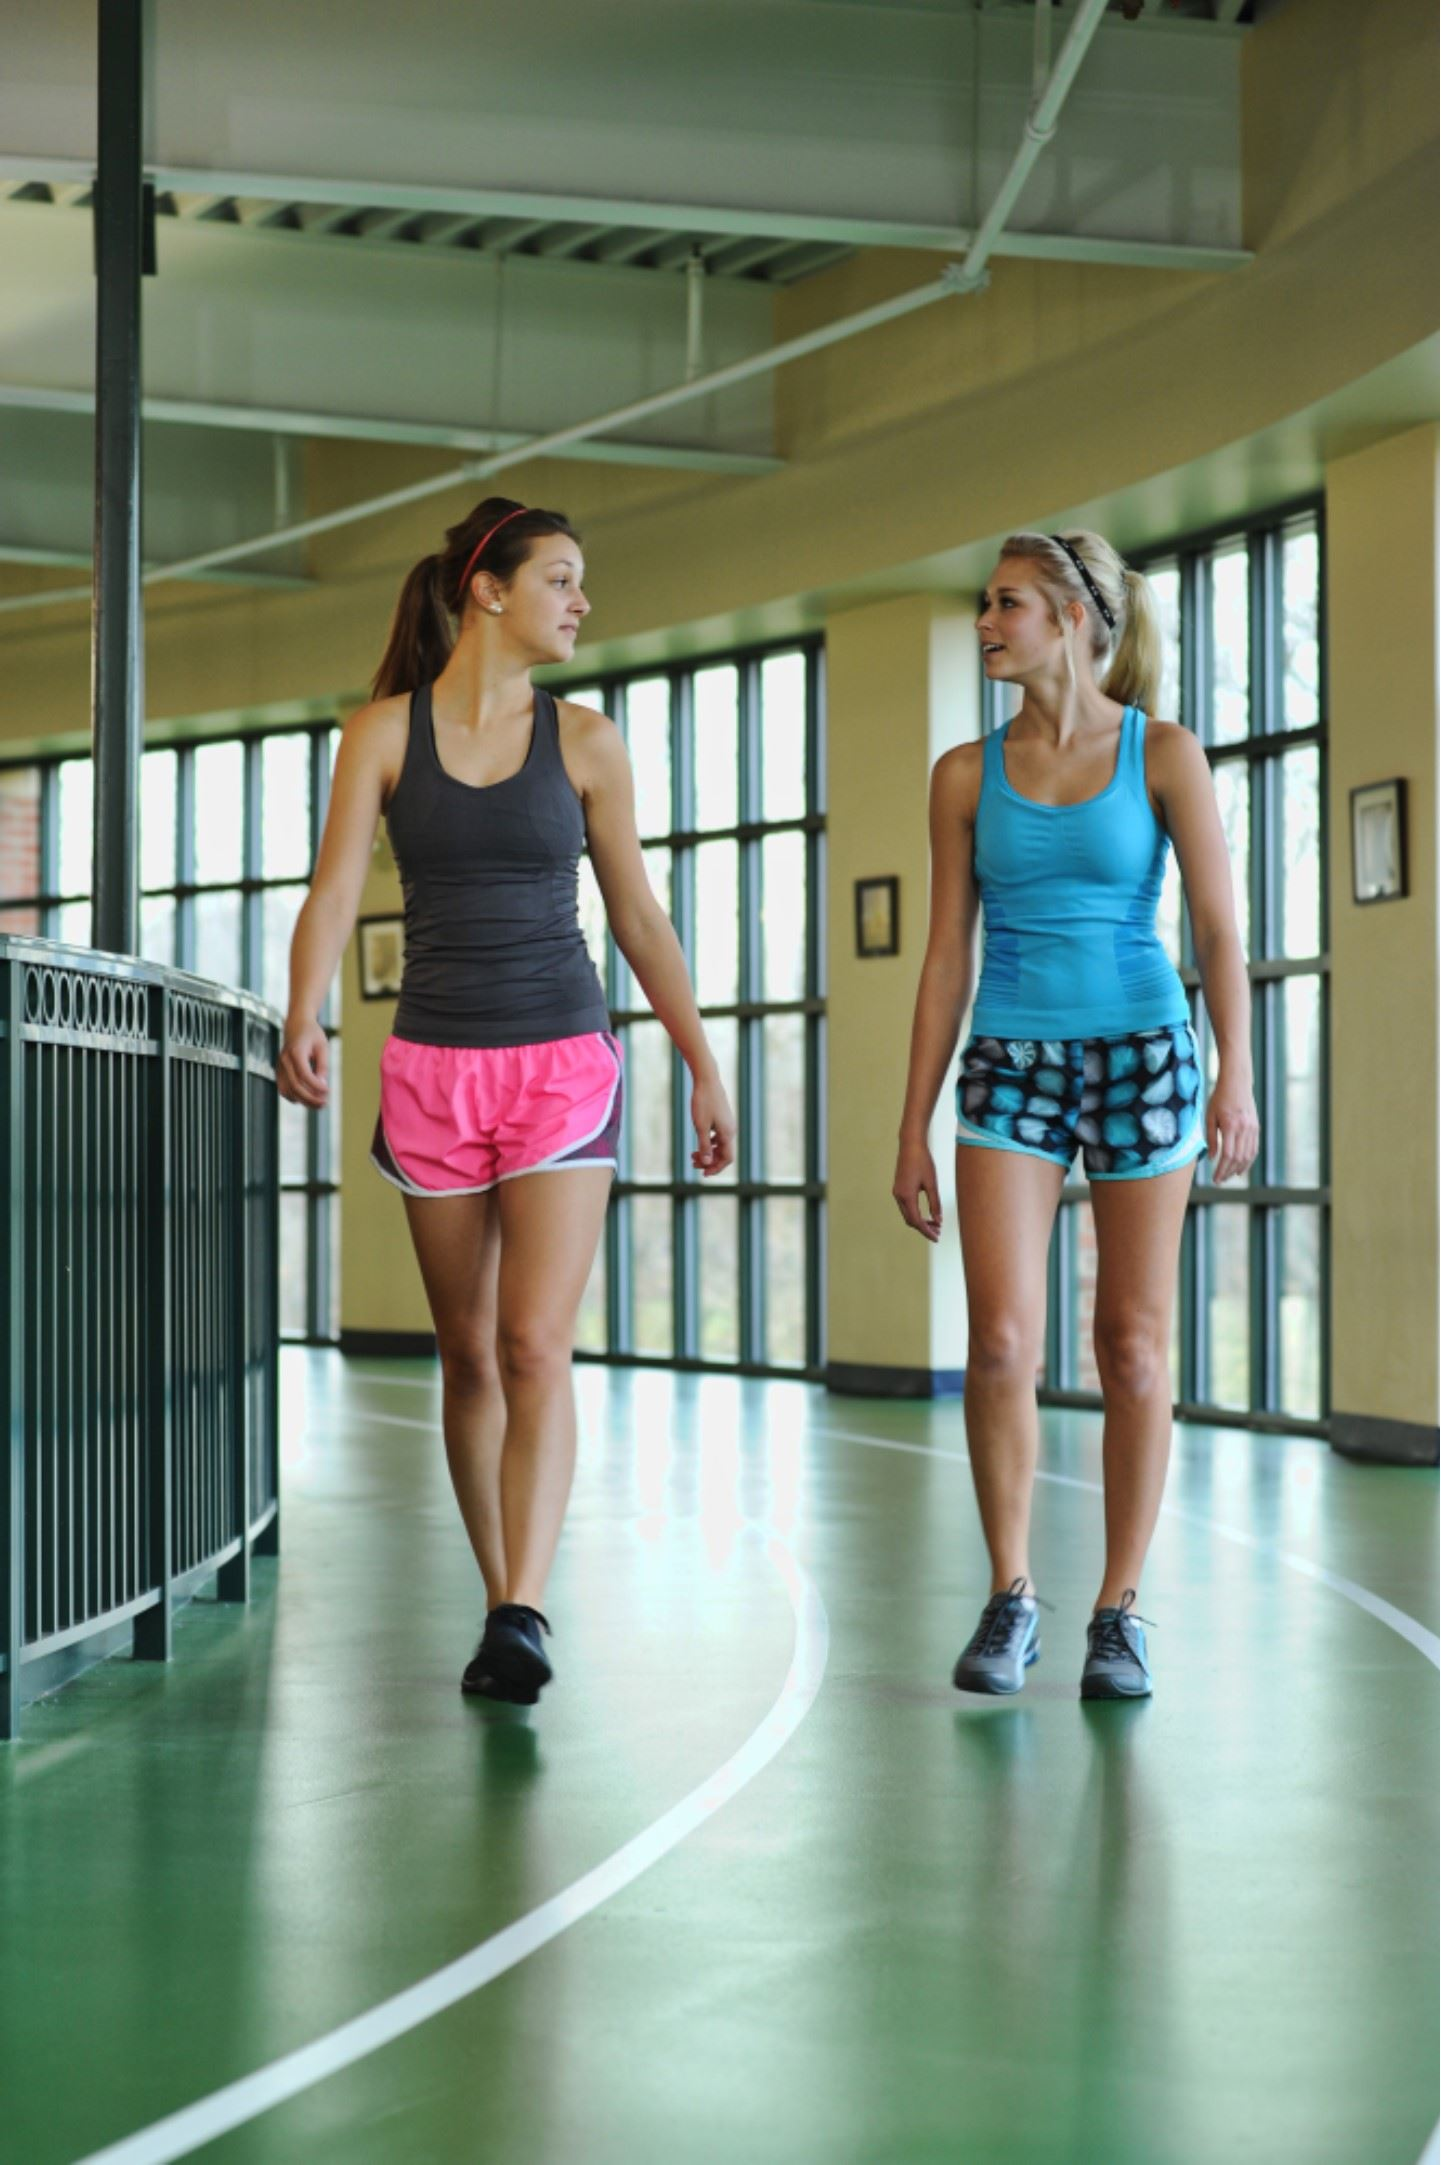 Two women walking on the indoor track.